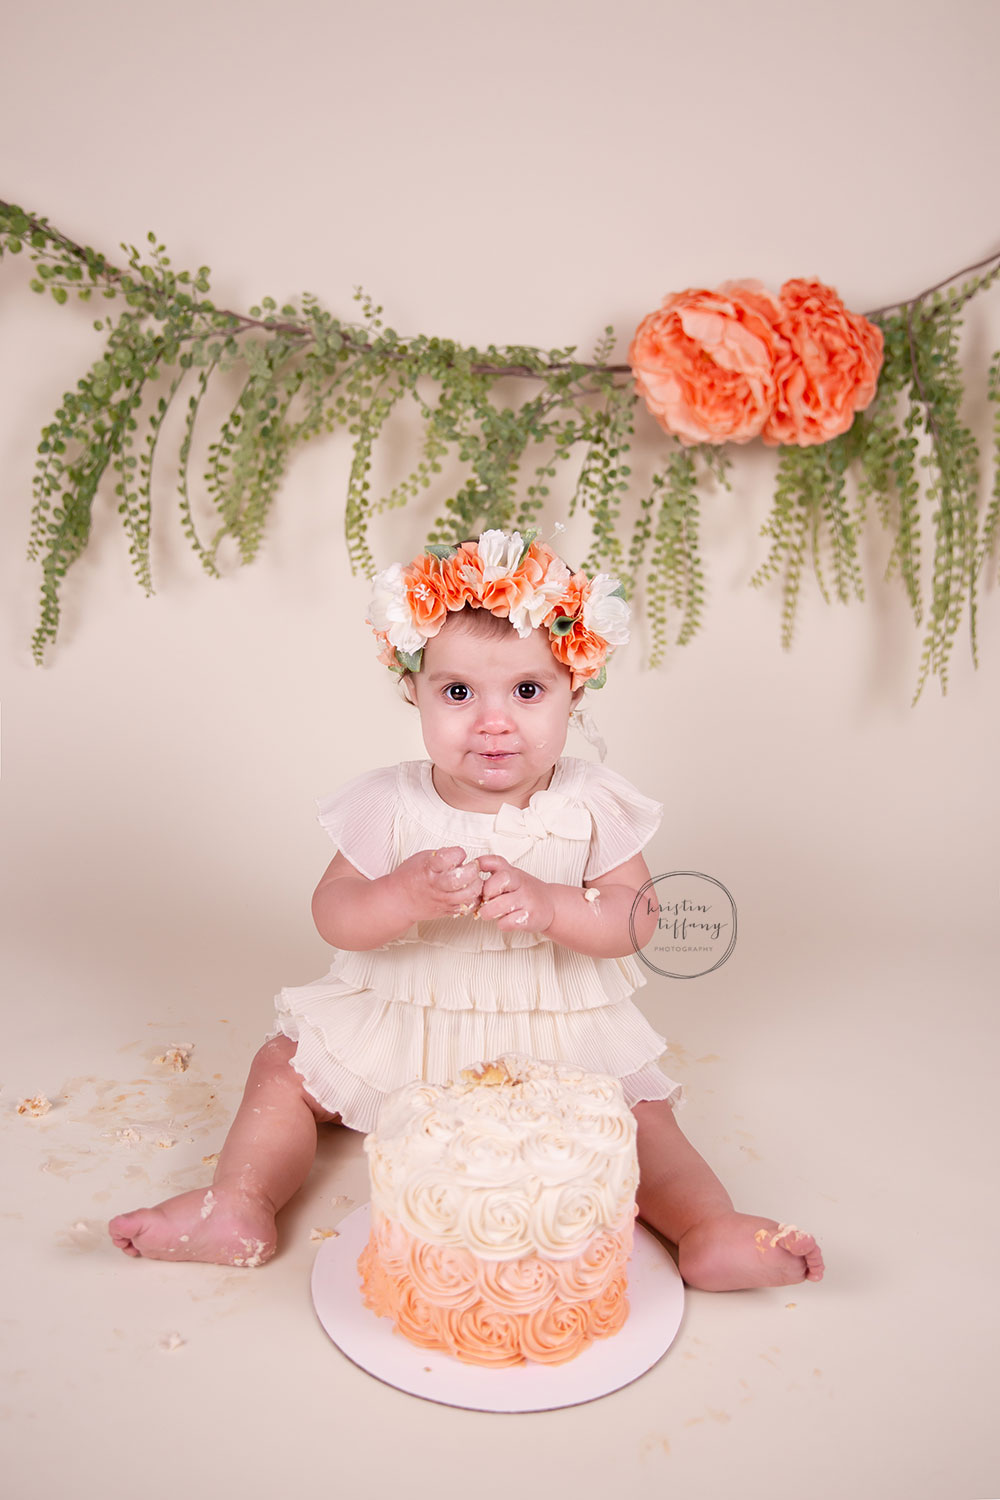 a photo of a baby girl at her cakesmash session